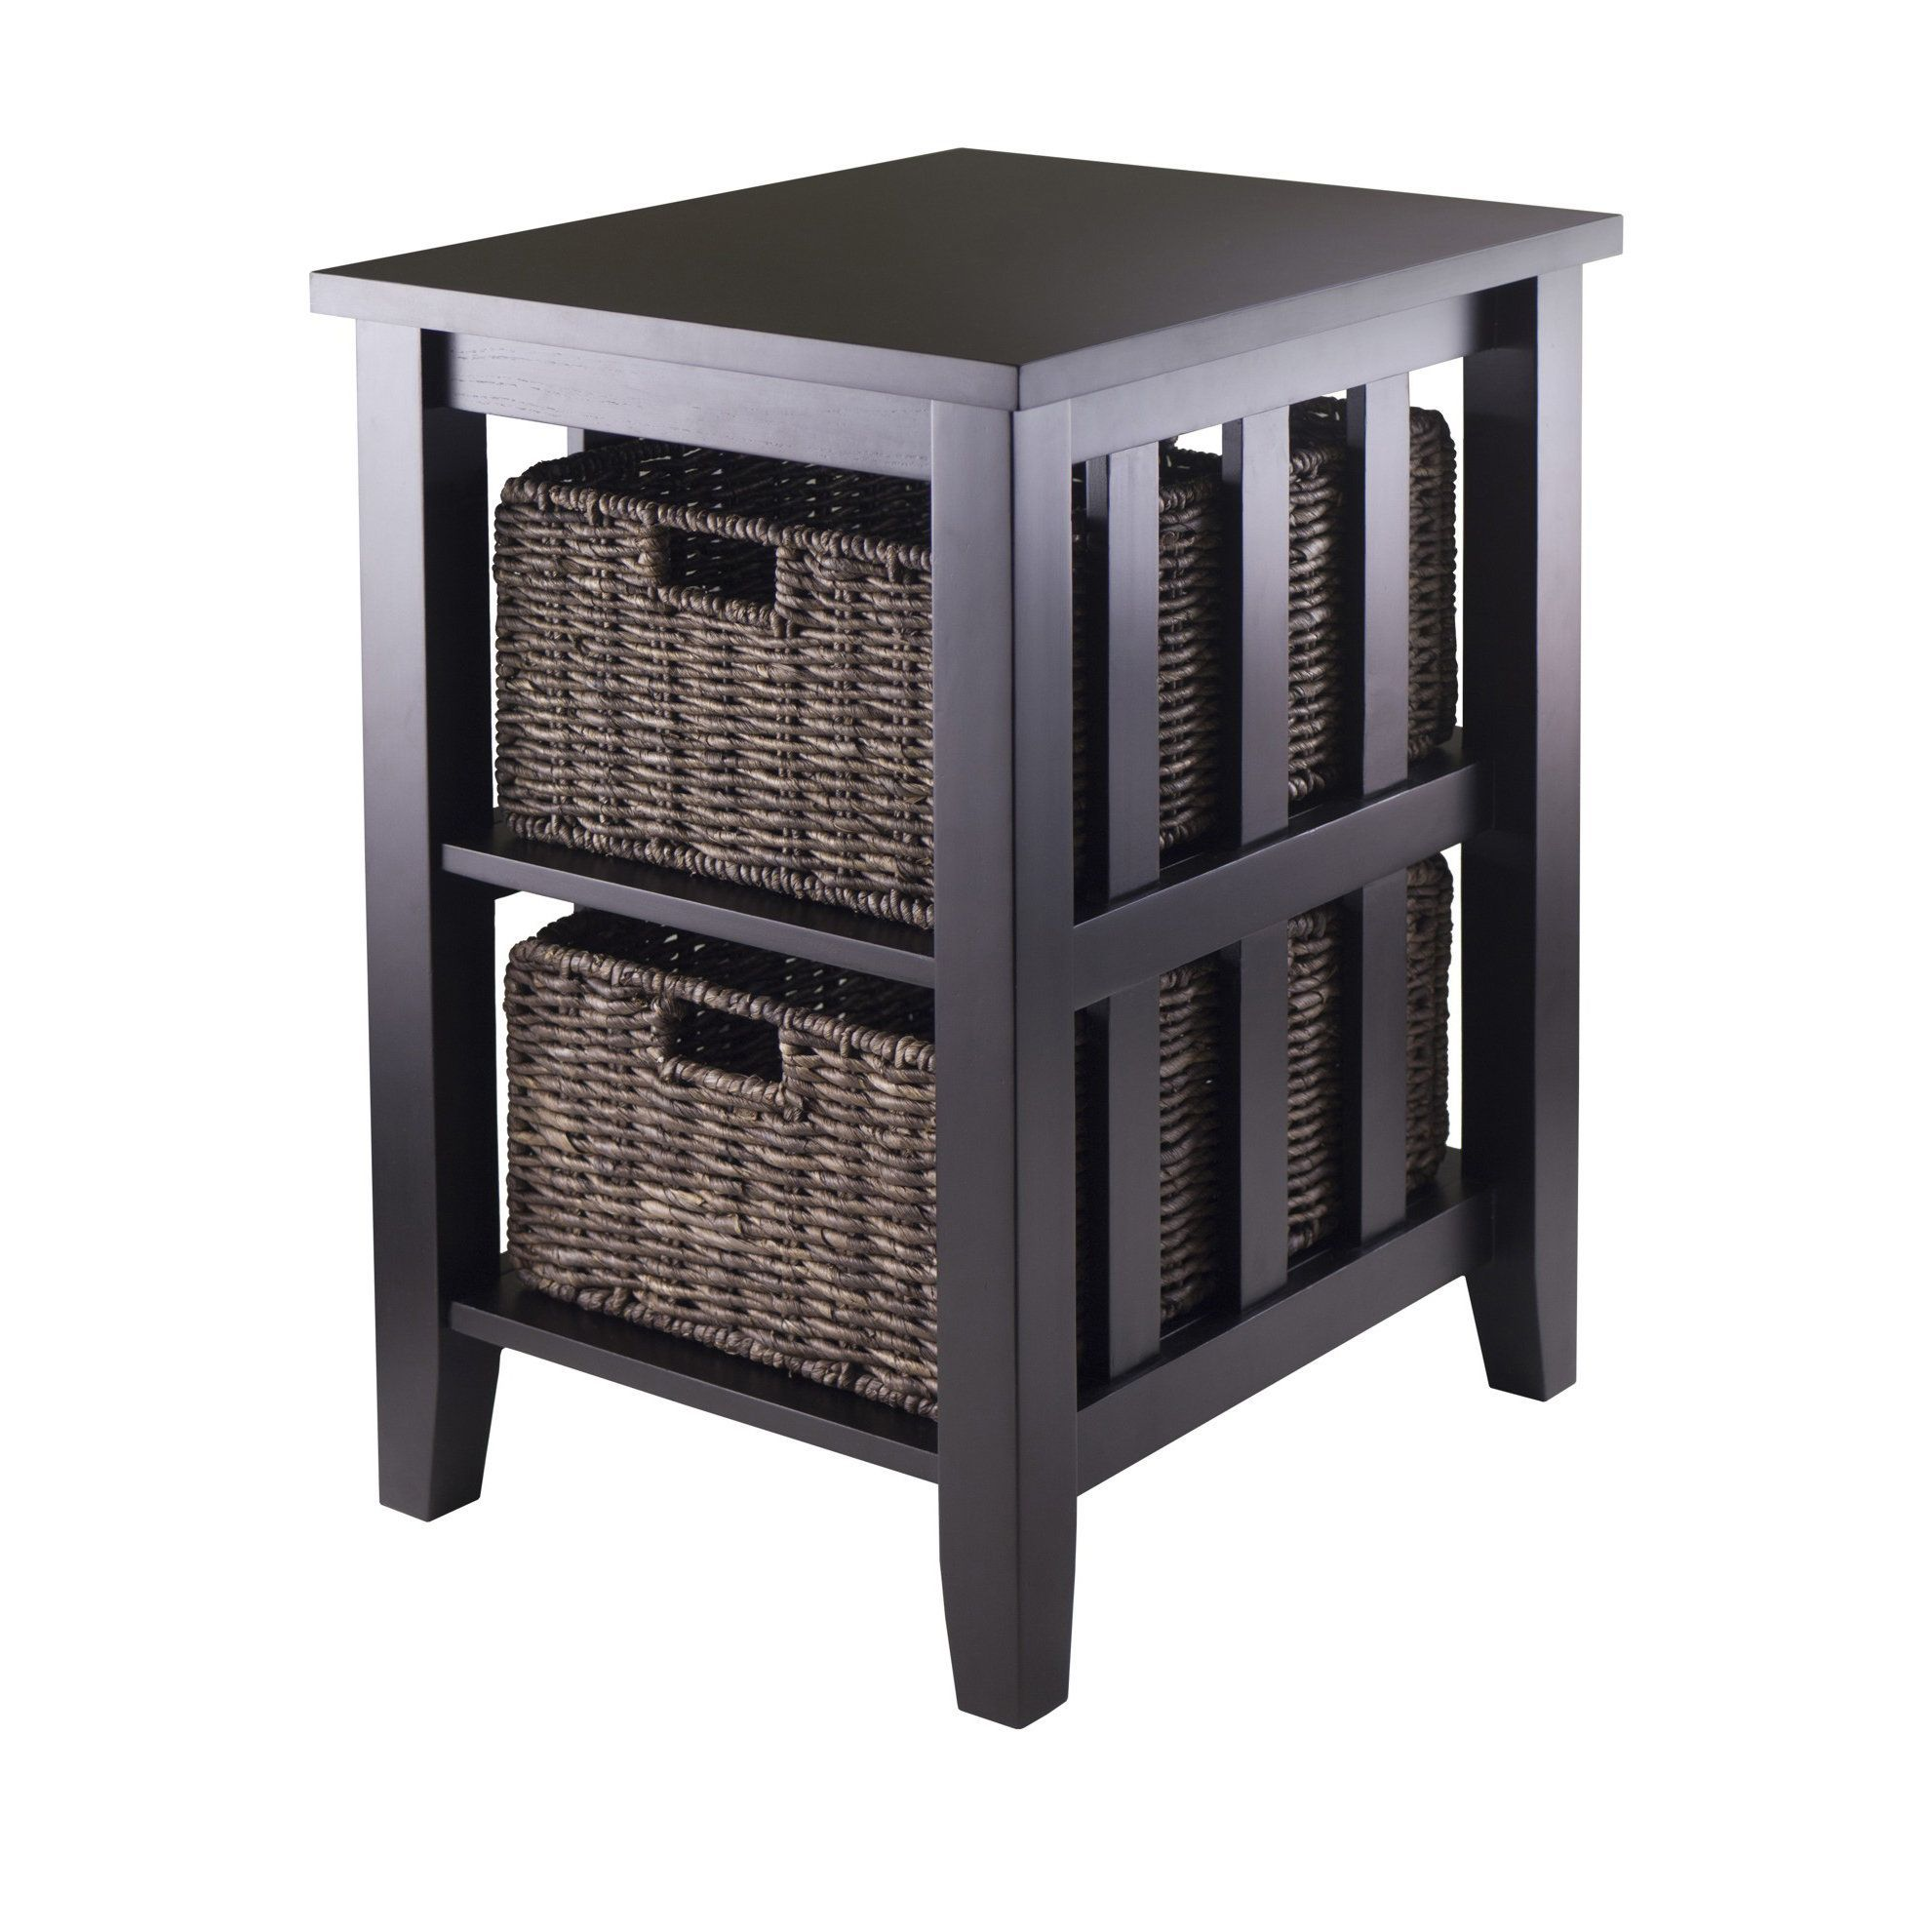 winsome morris espresso brown wood side table with foldable wicker accent baskets dark narrow outdoor dining small concrete round living room oak glass coffee circular garden